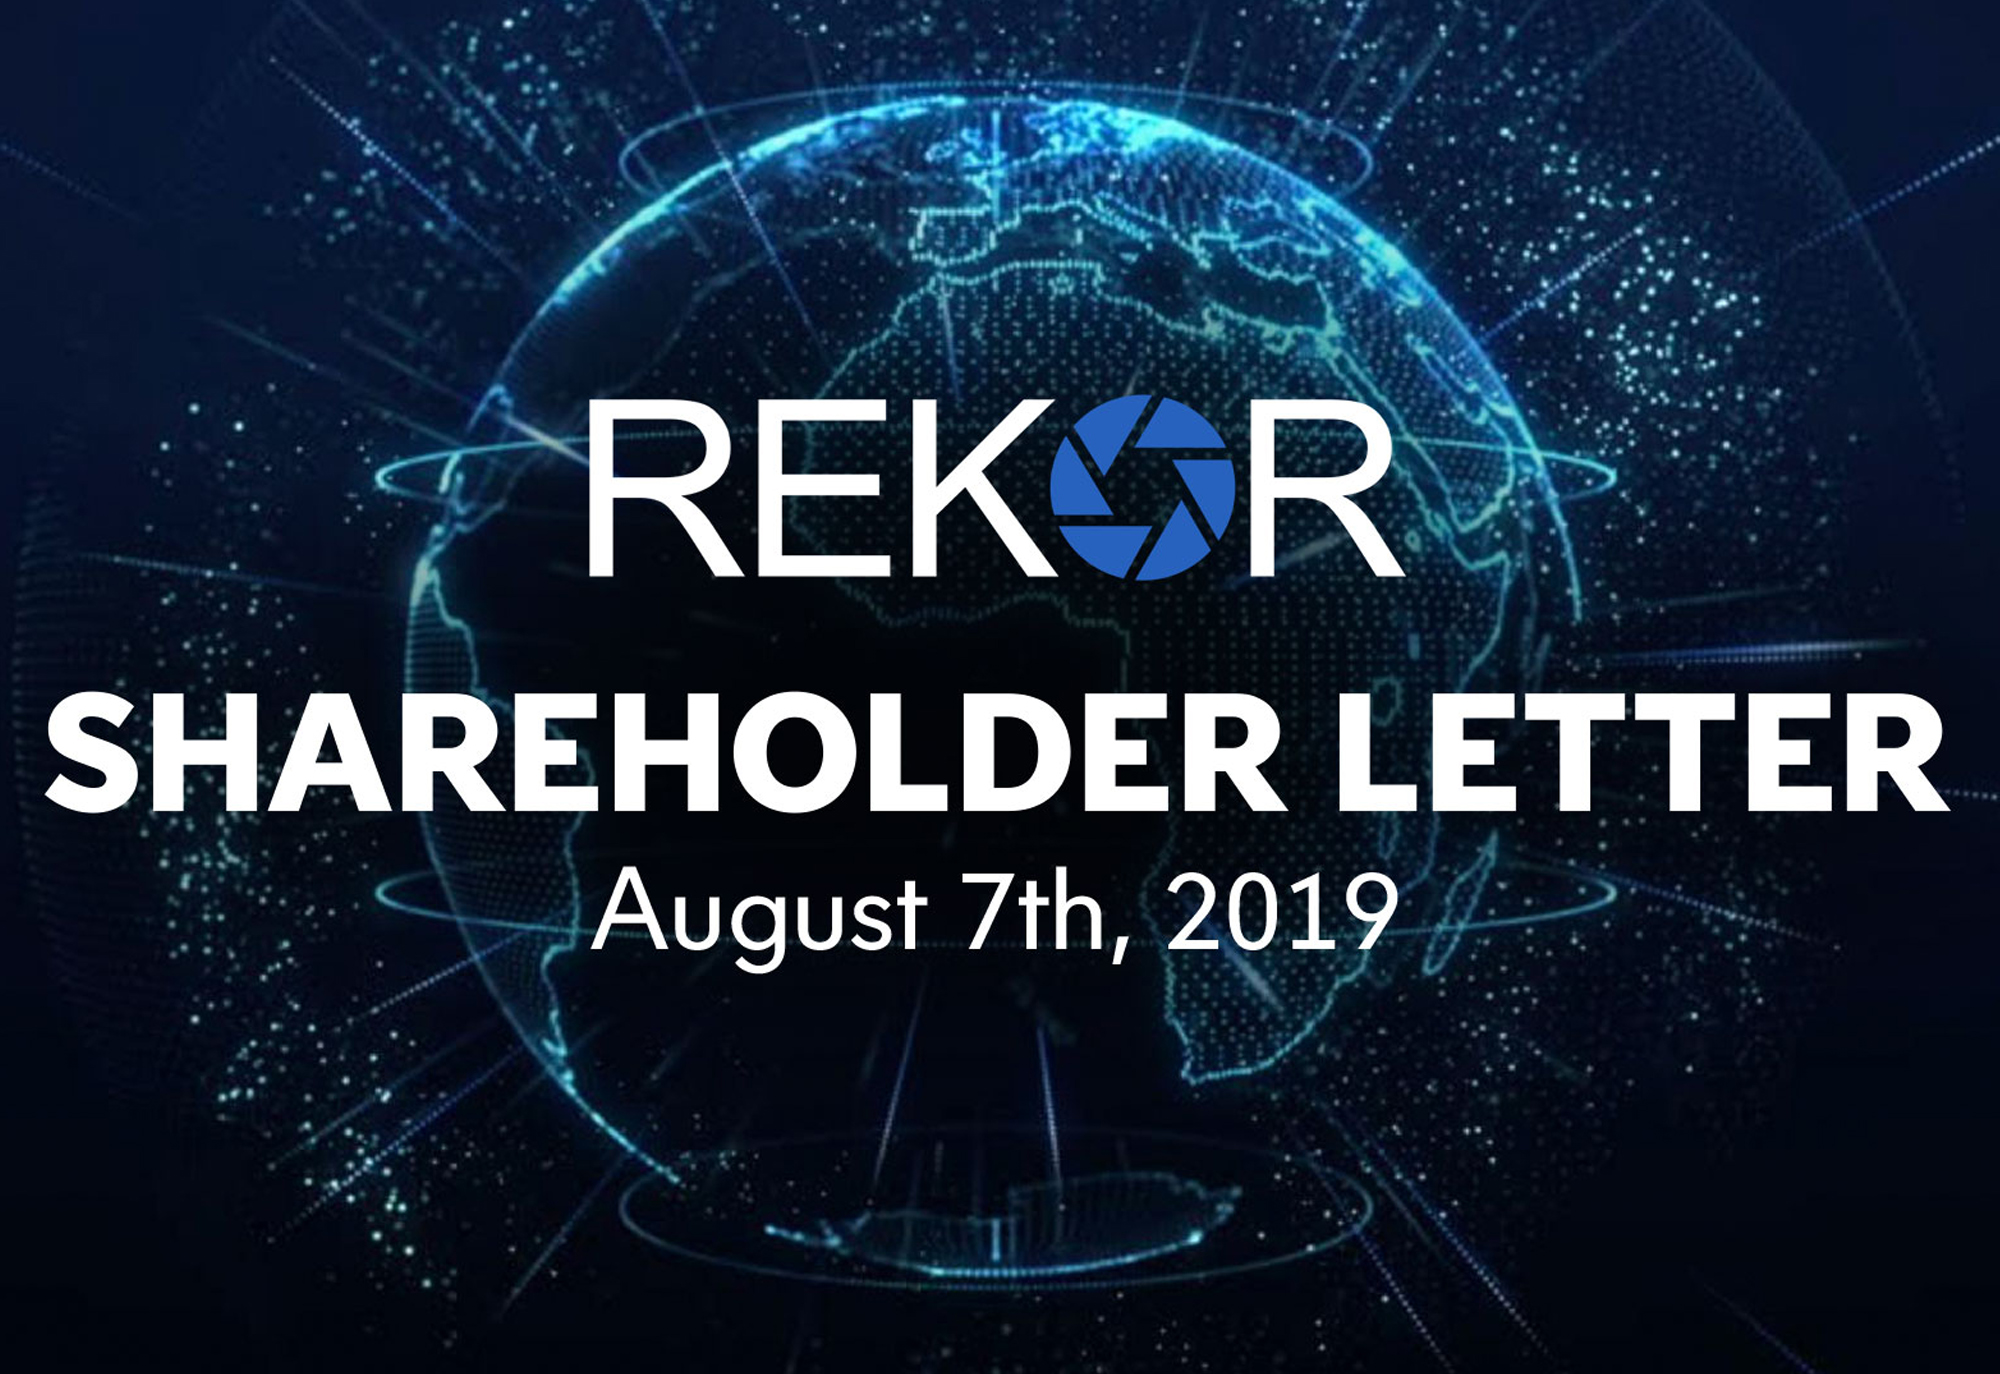 Rekor Systems CEO Robert A. Berman Issues Letter to Shareholders in Advance of 2019 Annual Meeting